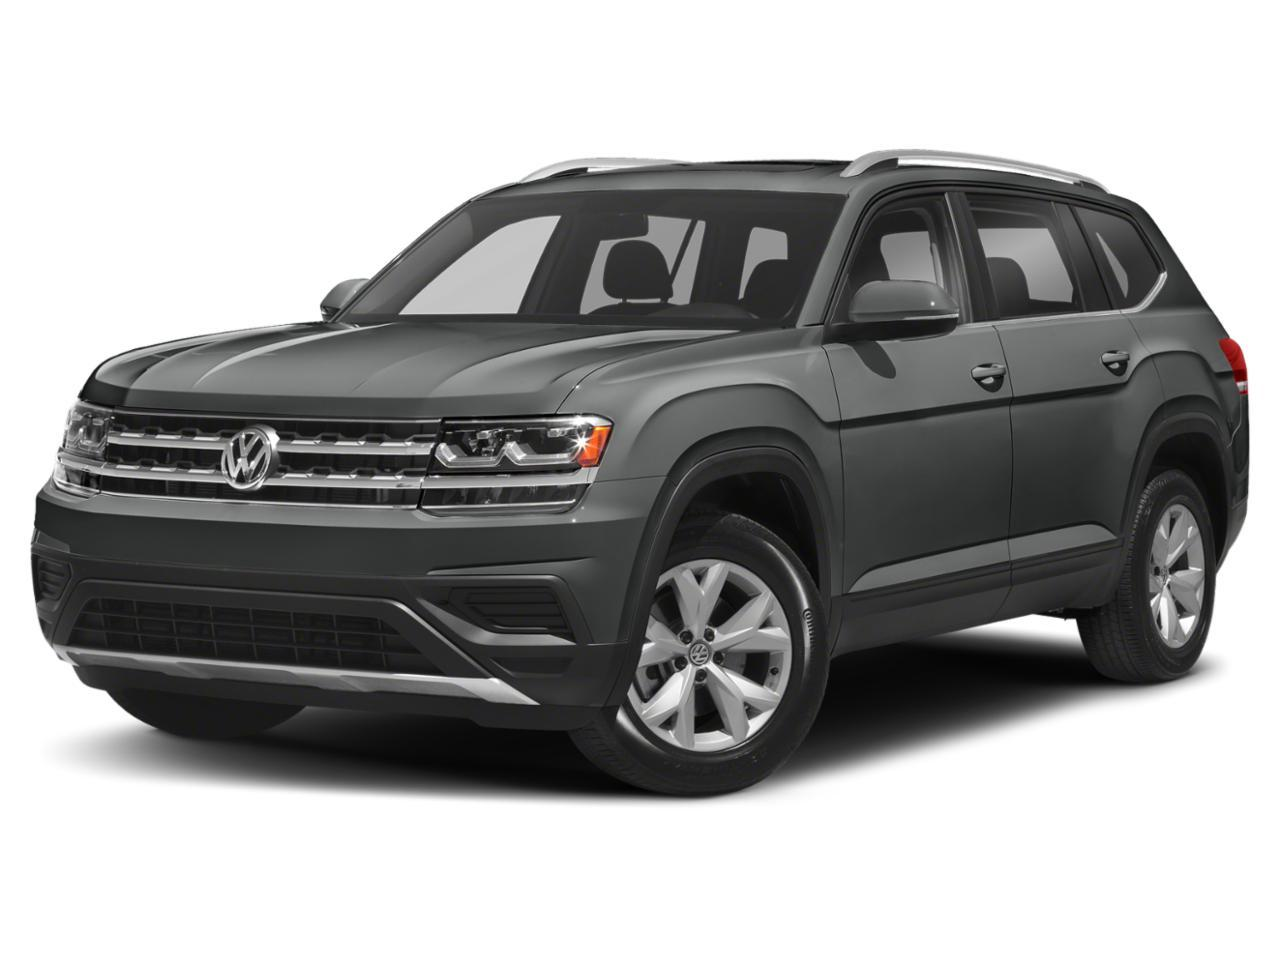 2019 Volkswagen Atlas Vehicle Photo in Allentown, PA 18103